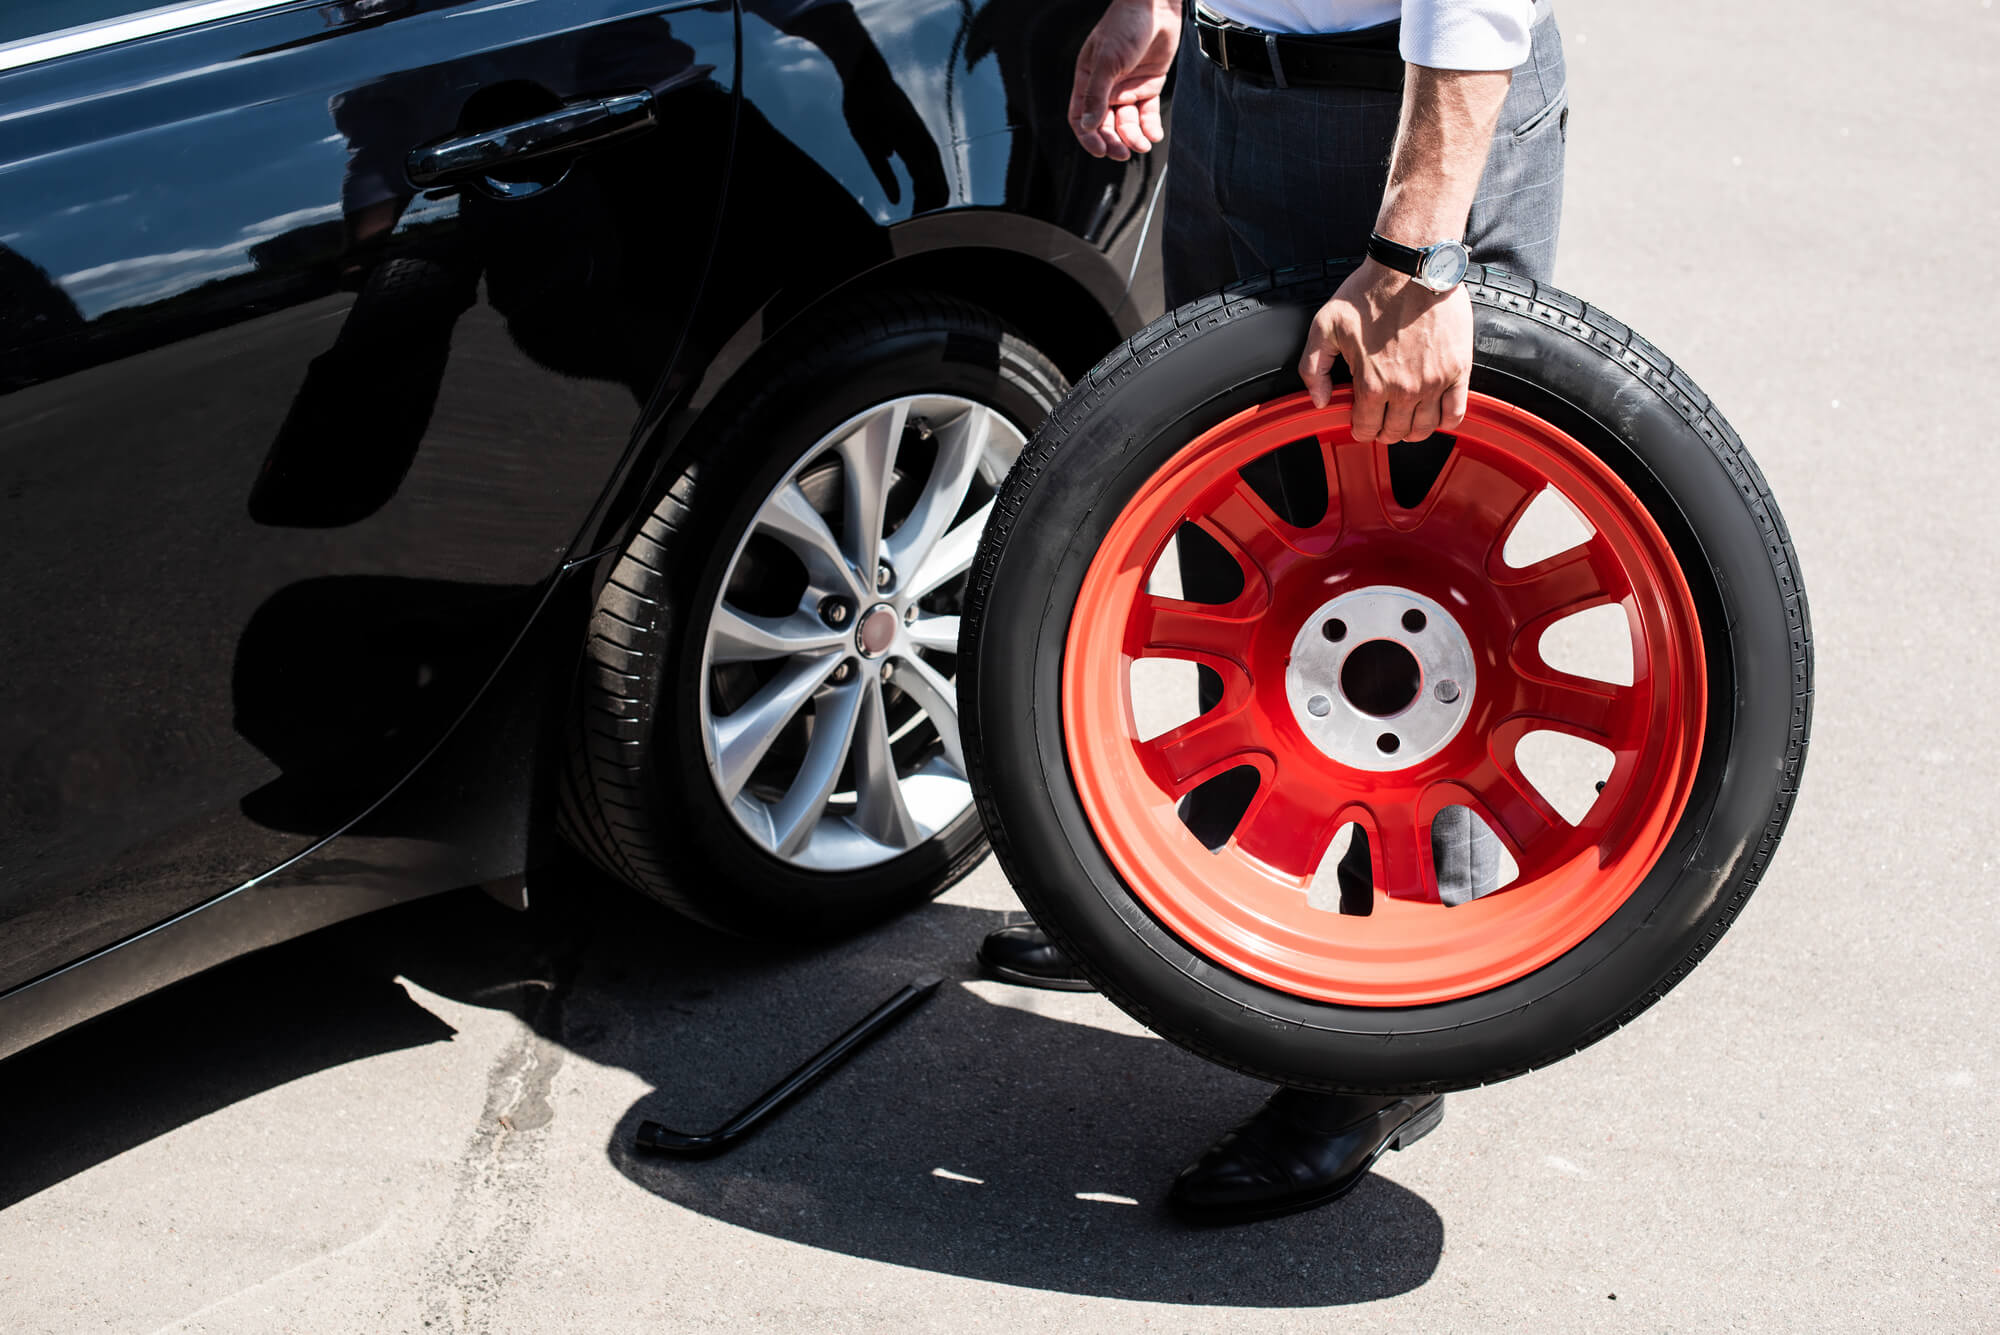 driving with a patched tire - NOLA Automotive Repairs